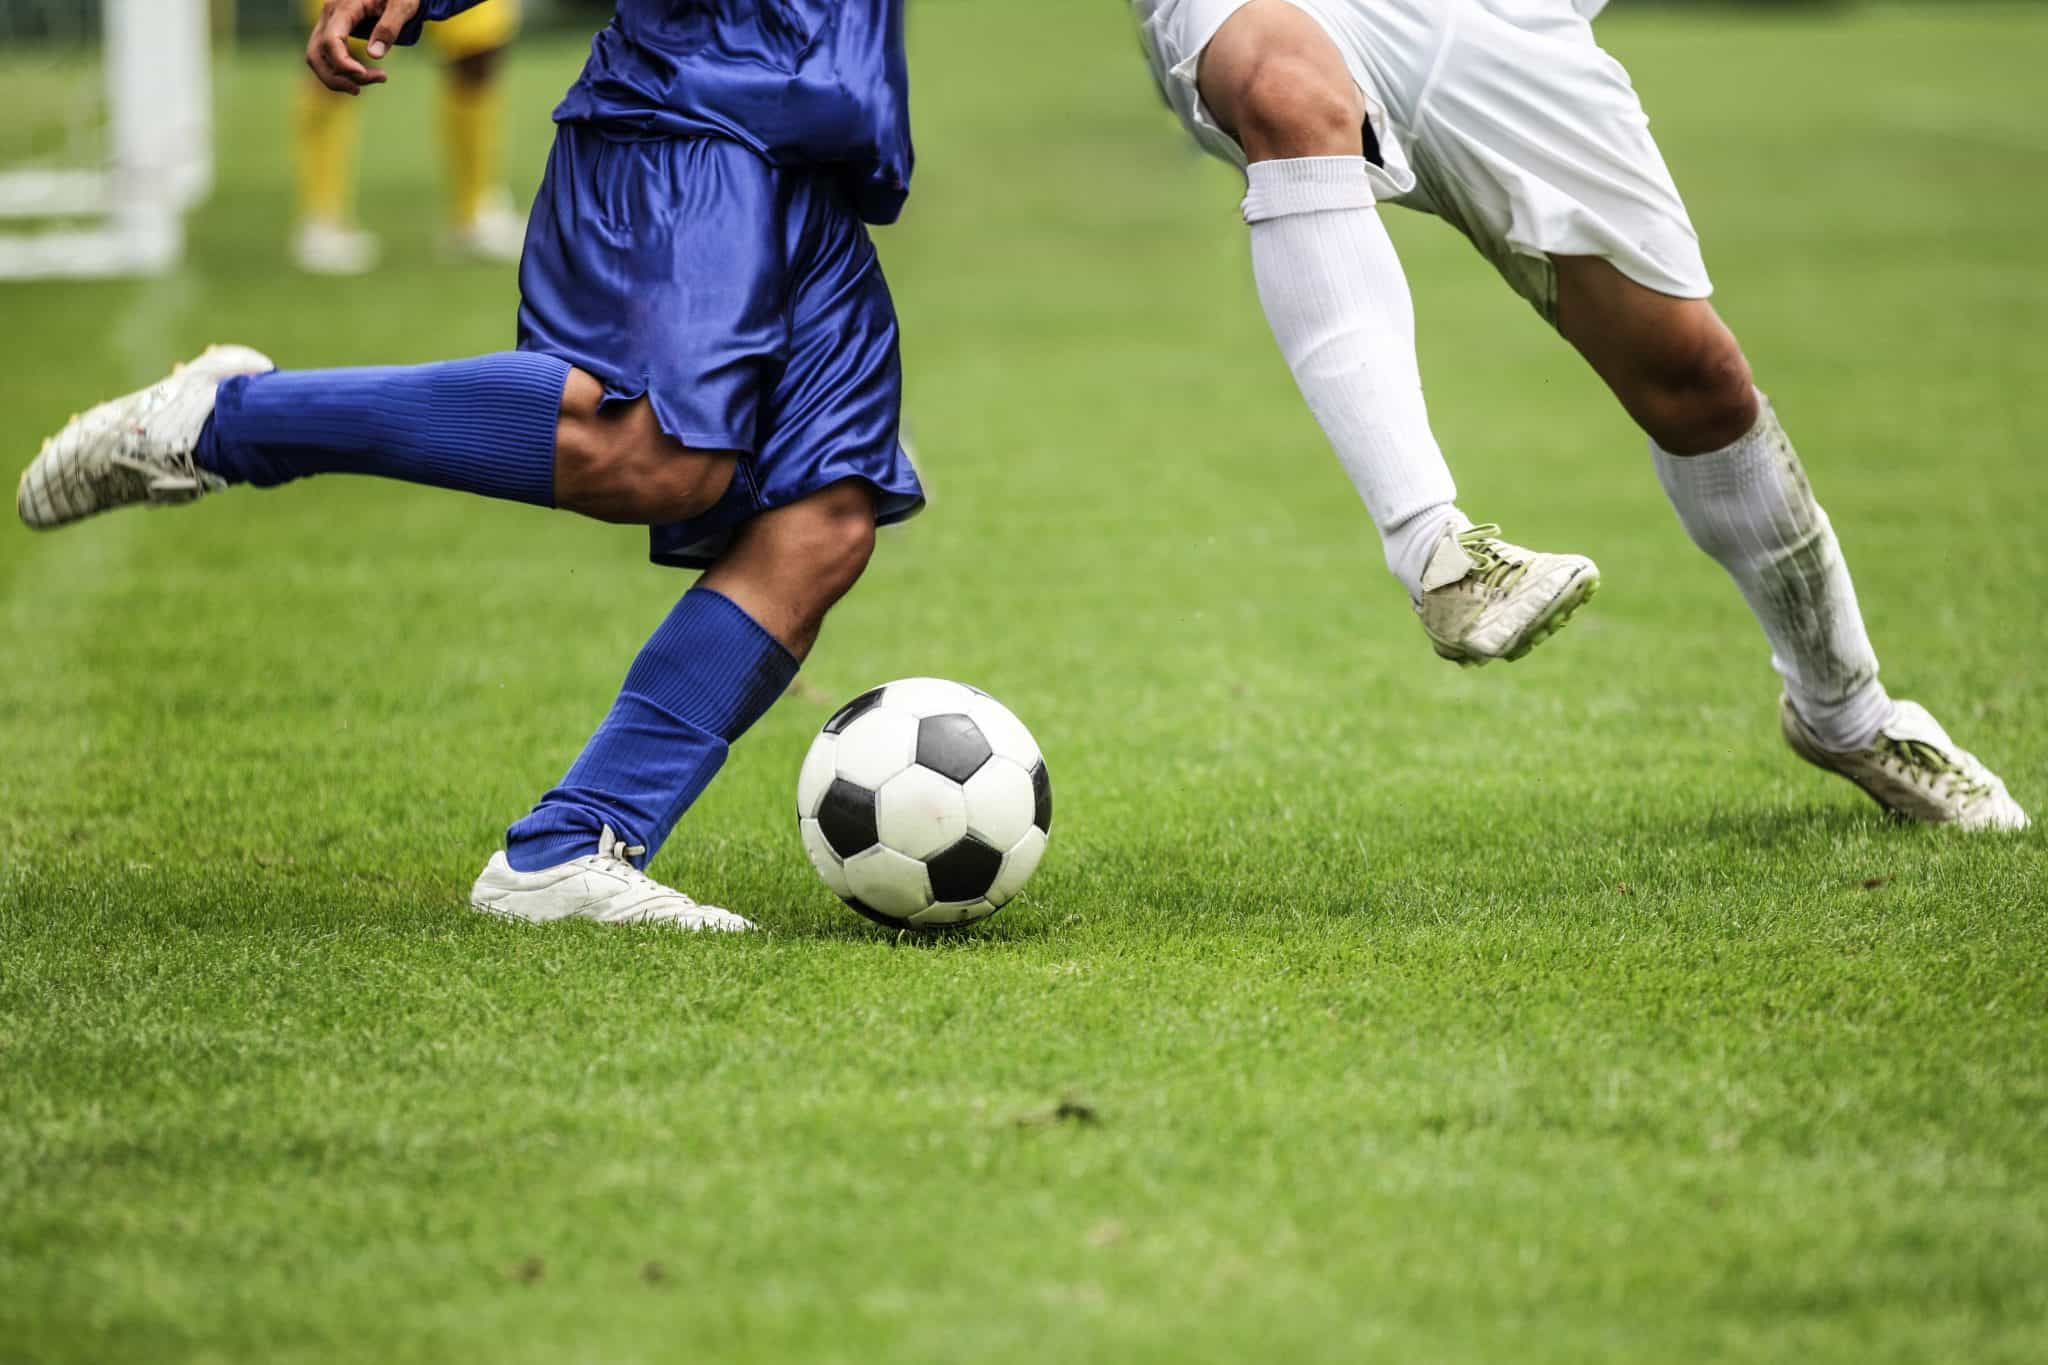 How to Defend in Soccer